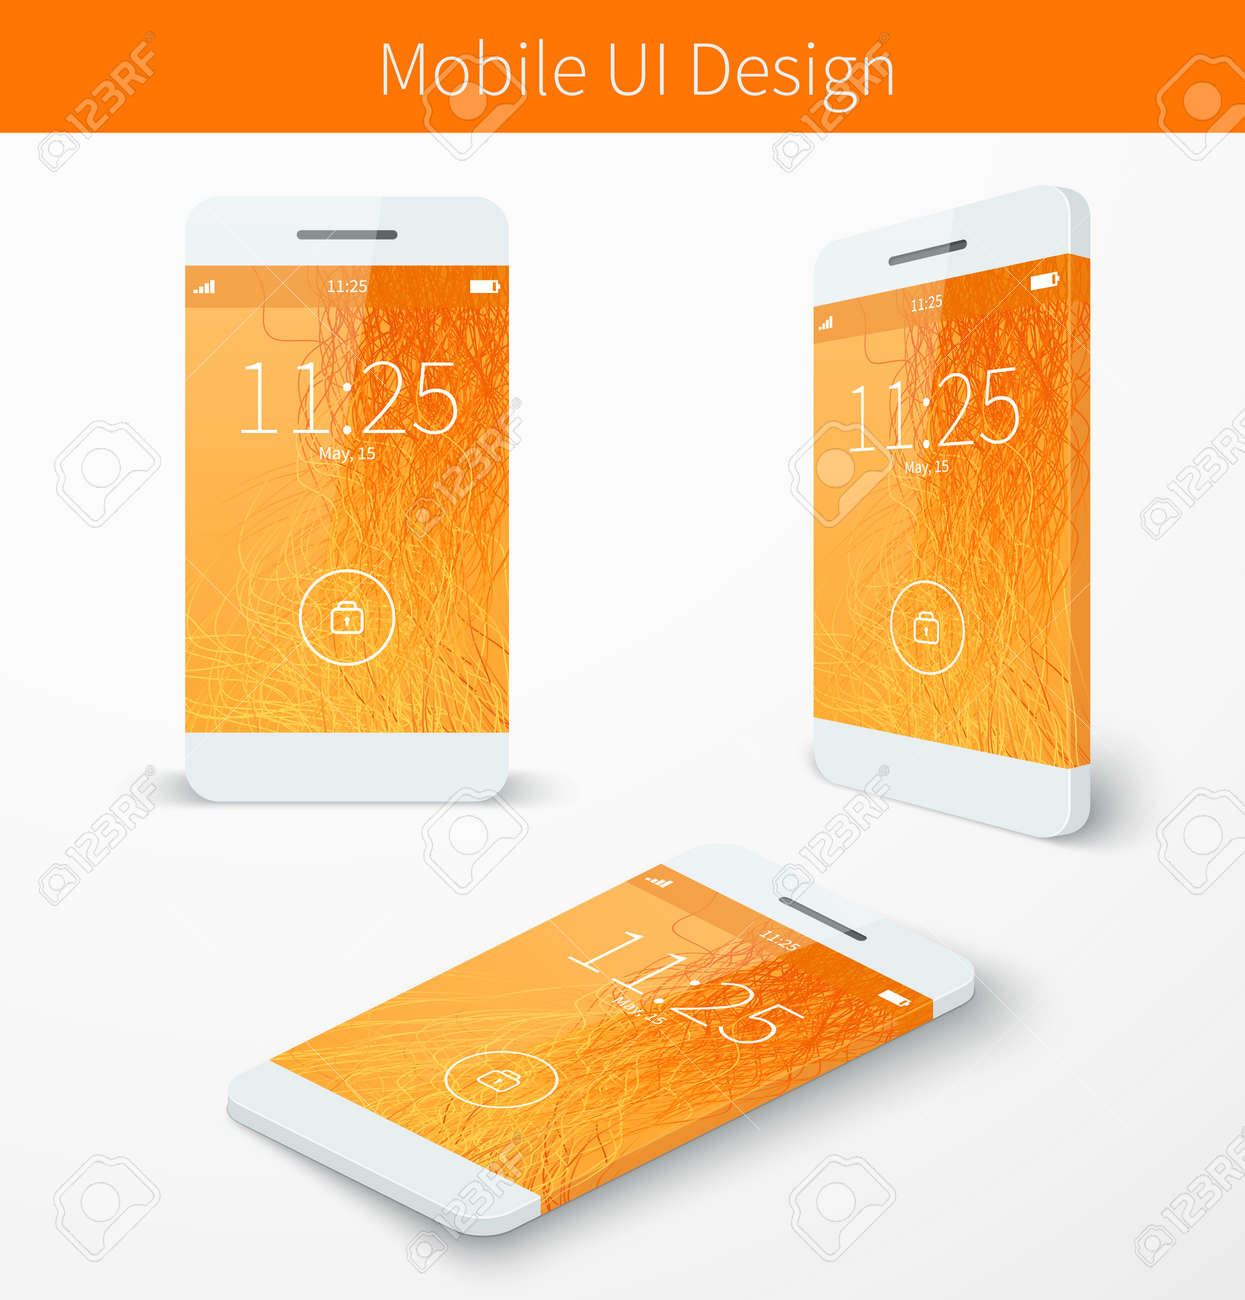 Set Of Display  Laptop  Tablet And Mobile Phones Electronic Device in addition Set Of Abstract Halftone Design Elements  Vector Illustration moreover Set Of White Isometric Bubbles With Drop Shadow  Vector together with  likewise Abstract Black Hand drawn Scribble Banner  Vector Illustration further  together with White Paper Template Mock up With Drop Shadow  Vector Illustration further  in addition  further White Paper Material Design Wallpaper With Shadow  Vector in addition Divider Stock Vectors  Royalty Free Divider Illustrations. on 4750x4961